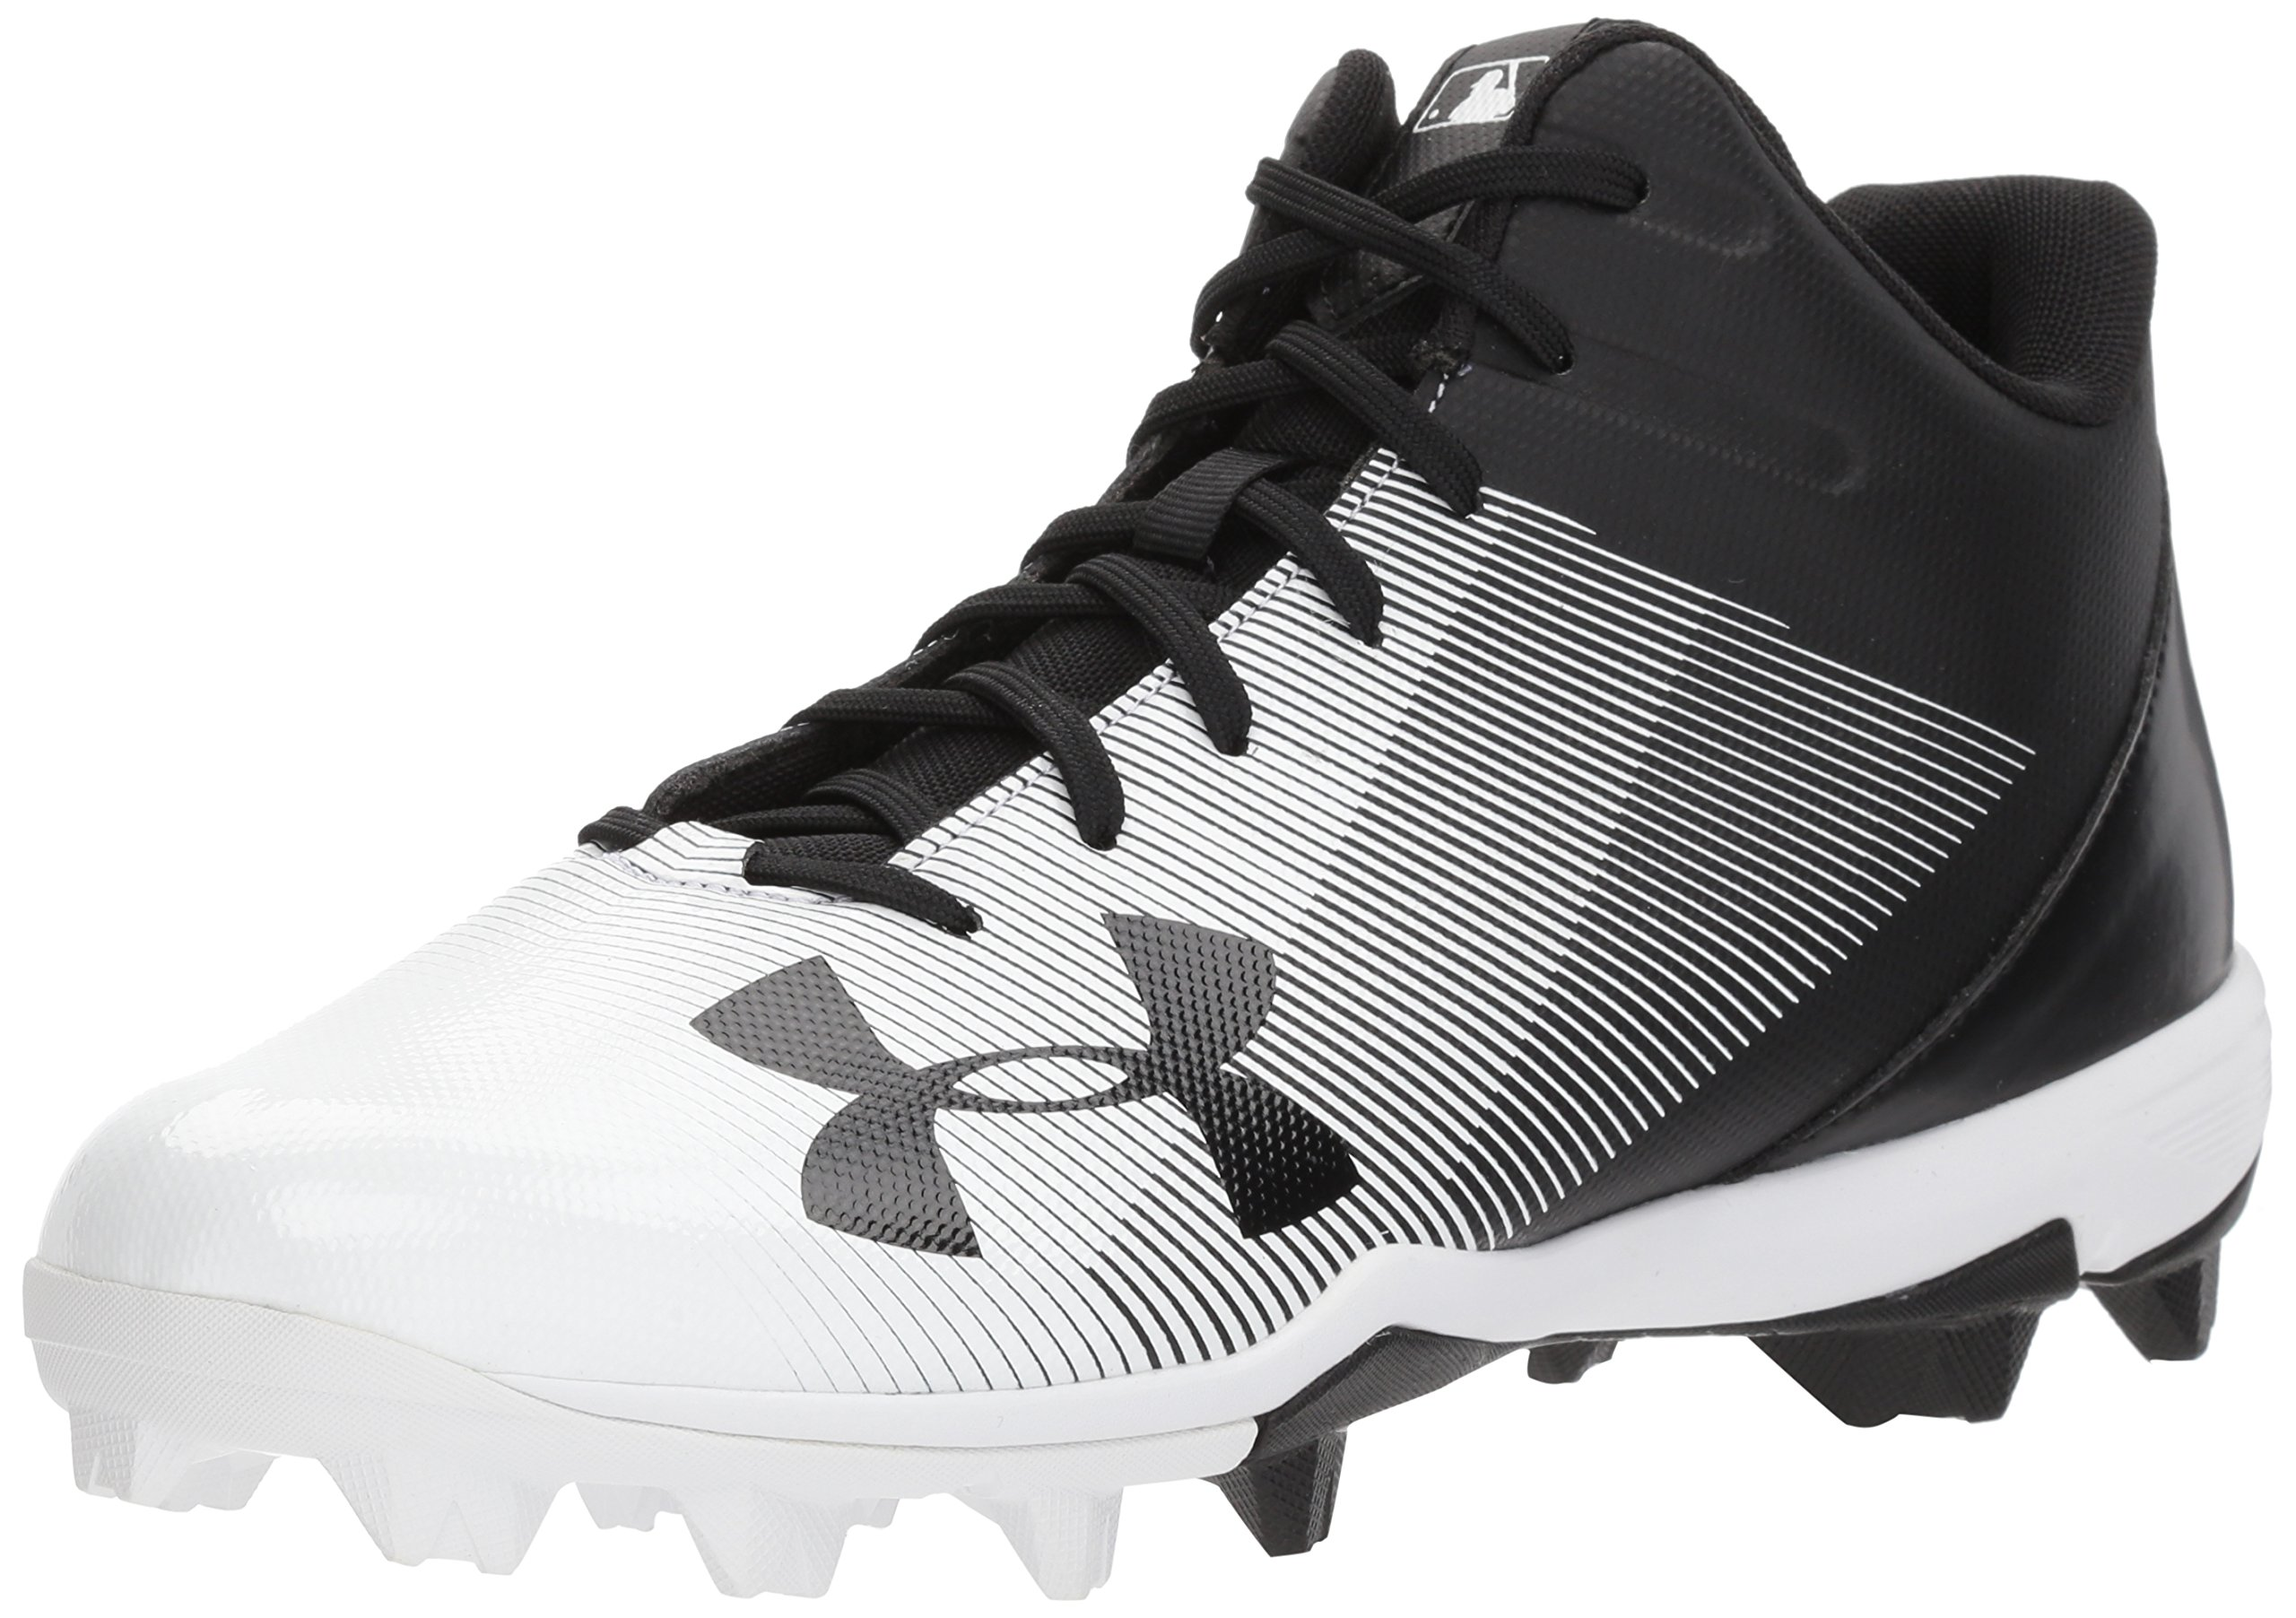 Under Armour Men's Leadoff Mid RM Baseball Shoe, Black (001)/White, 9 by Under Armour